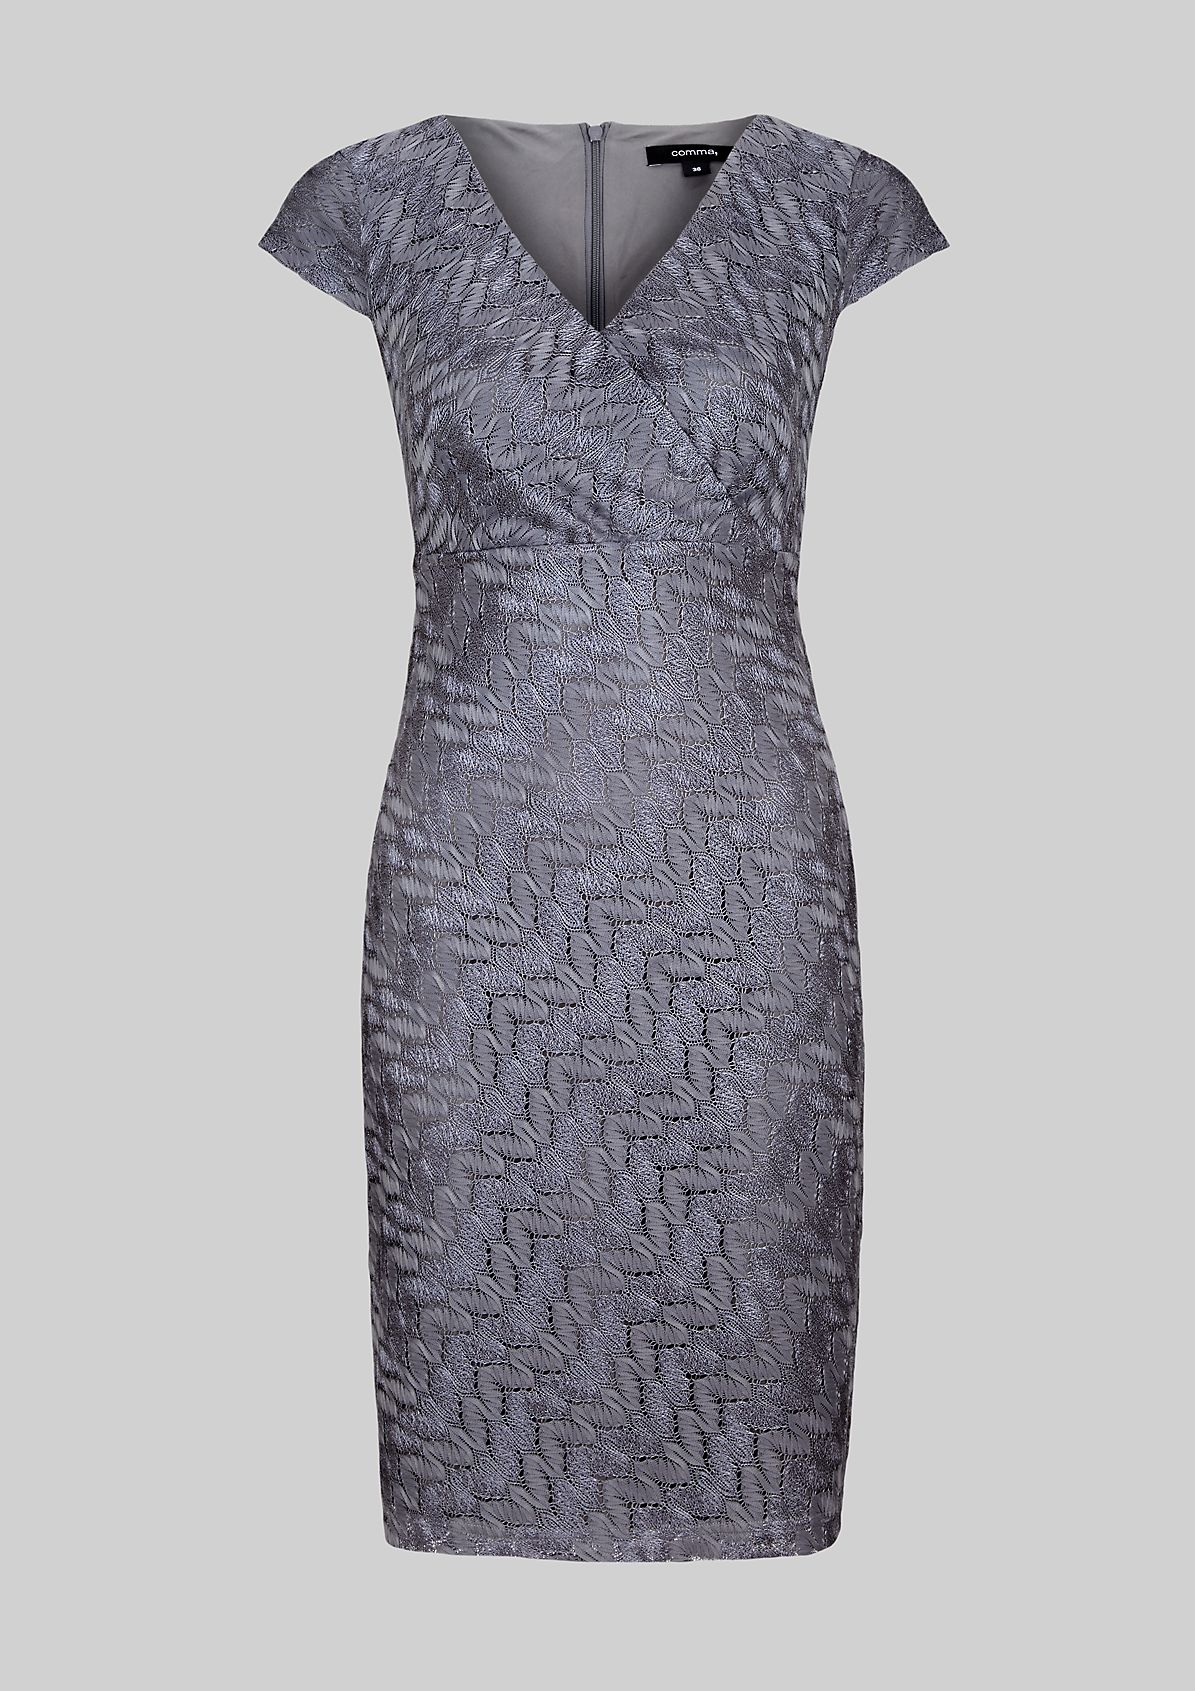 Extravagant evening dress with an exciting pattern from s.Oliver